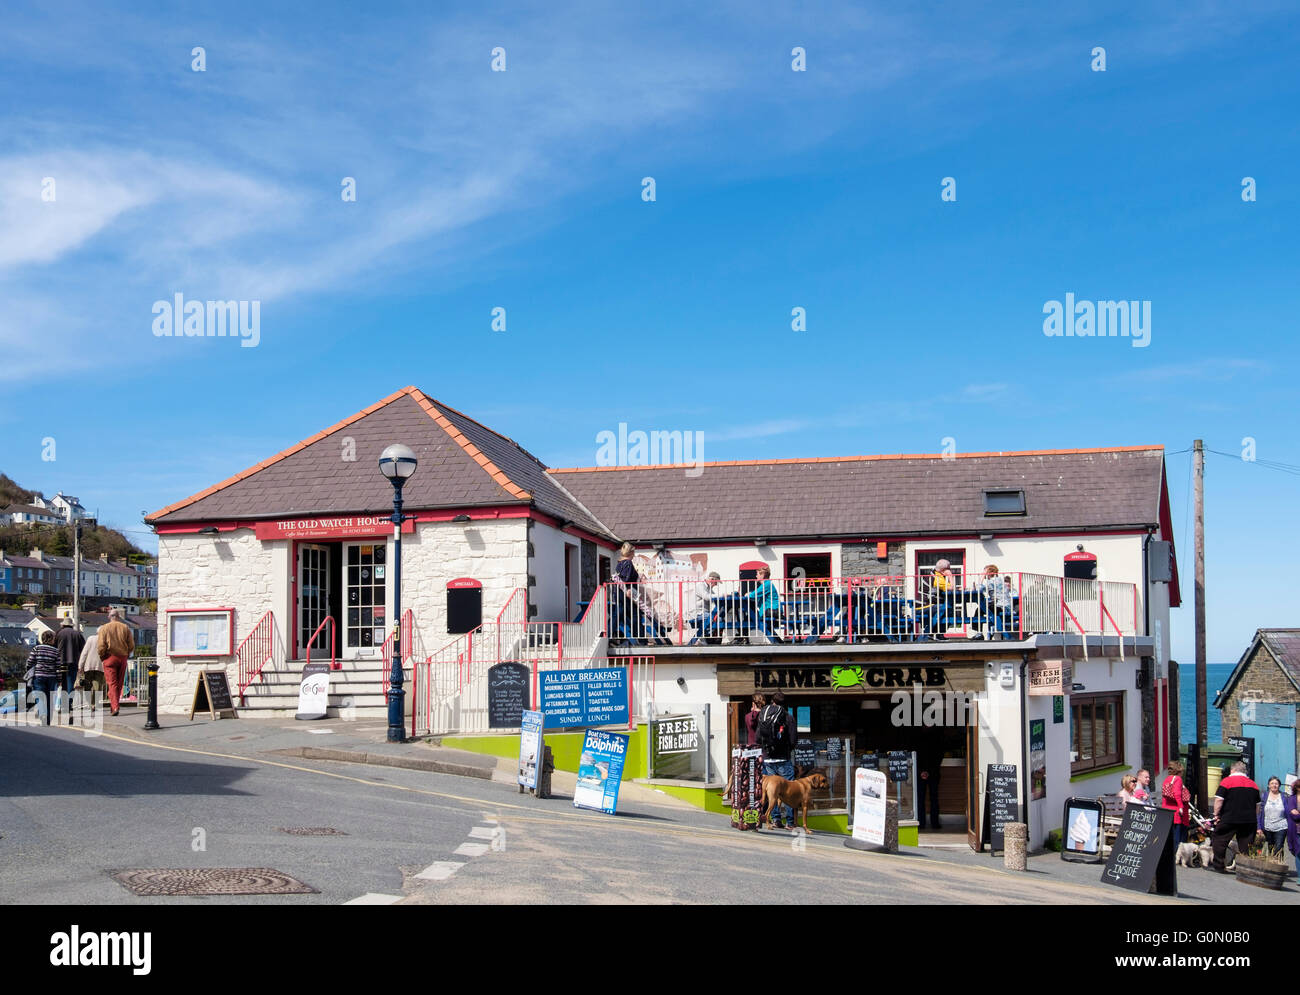 The Old Watch House cafe and restaurant with Fish and Chip shop below in fishing village popular with tourists. - Stock Image